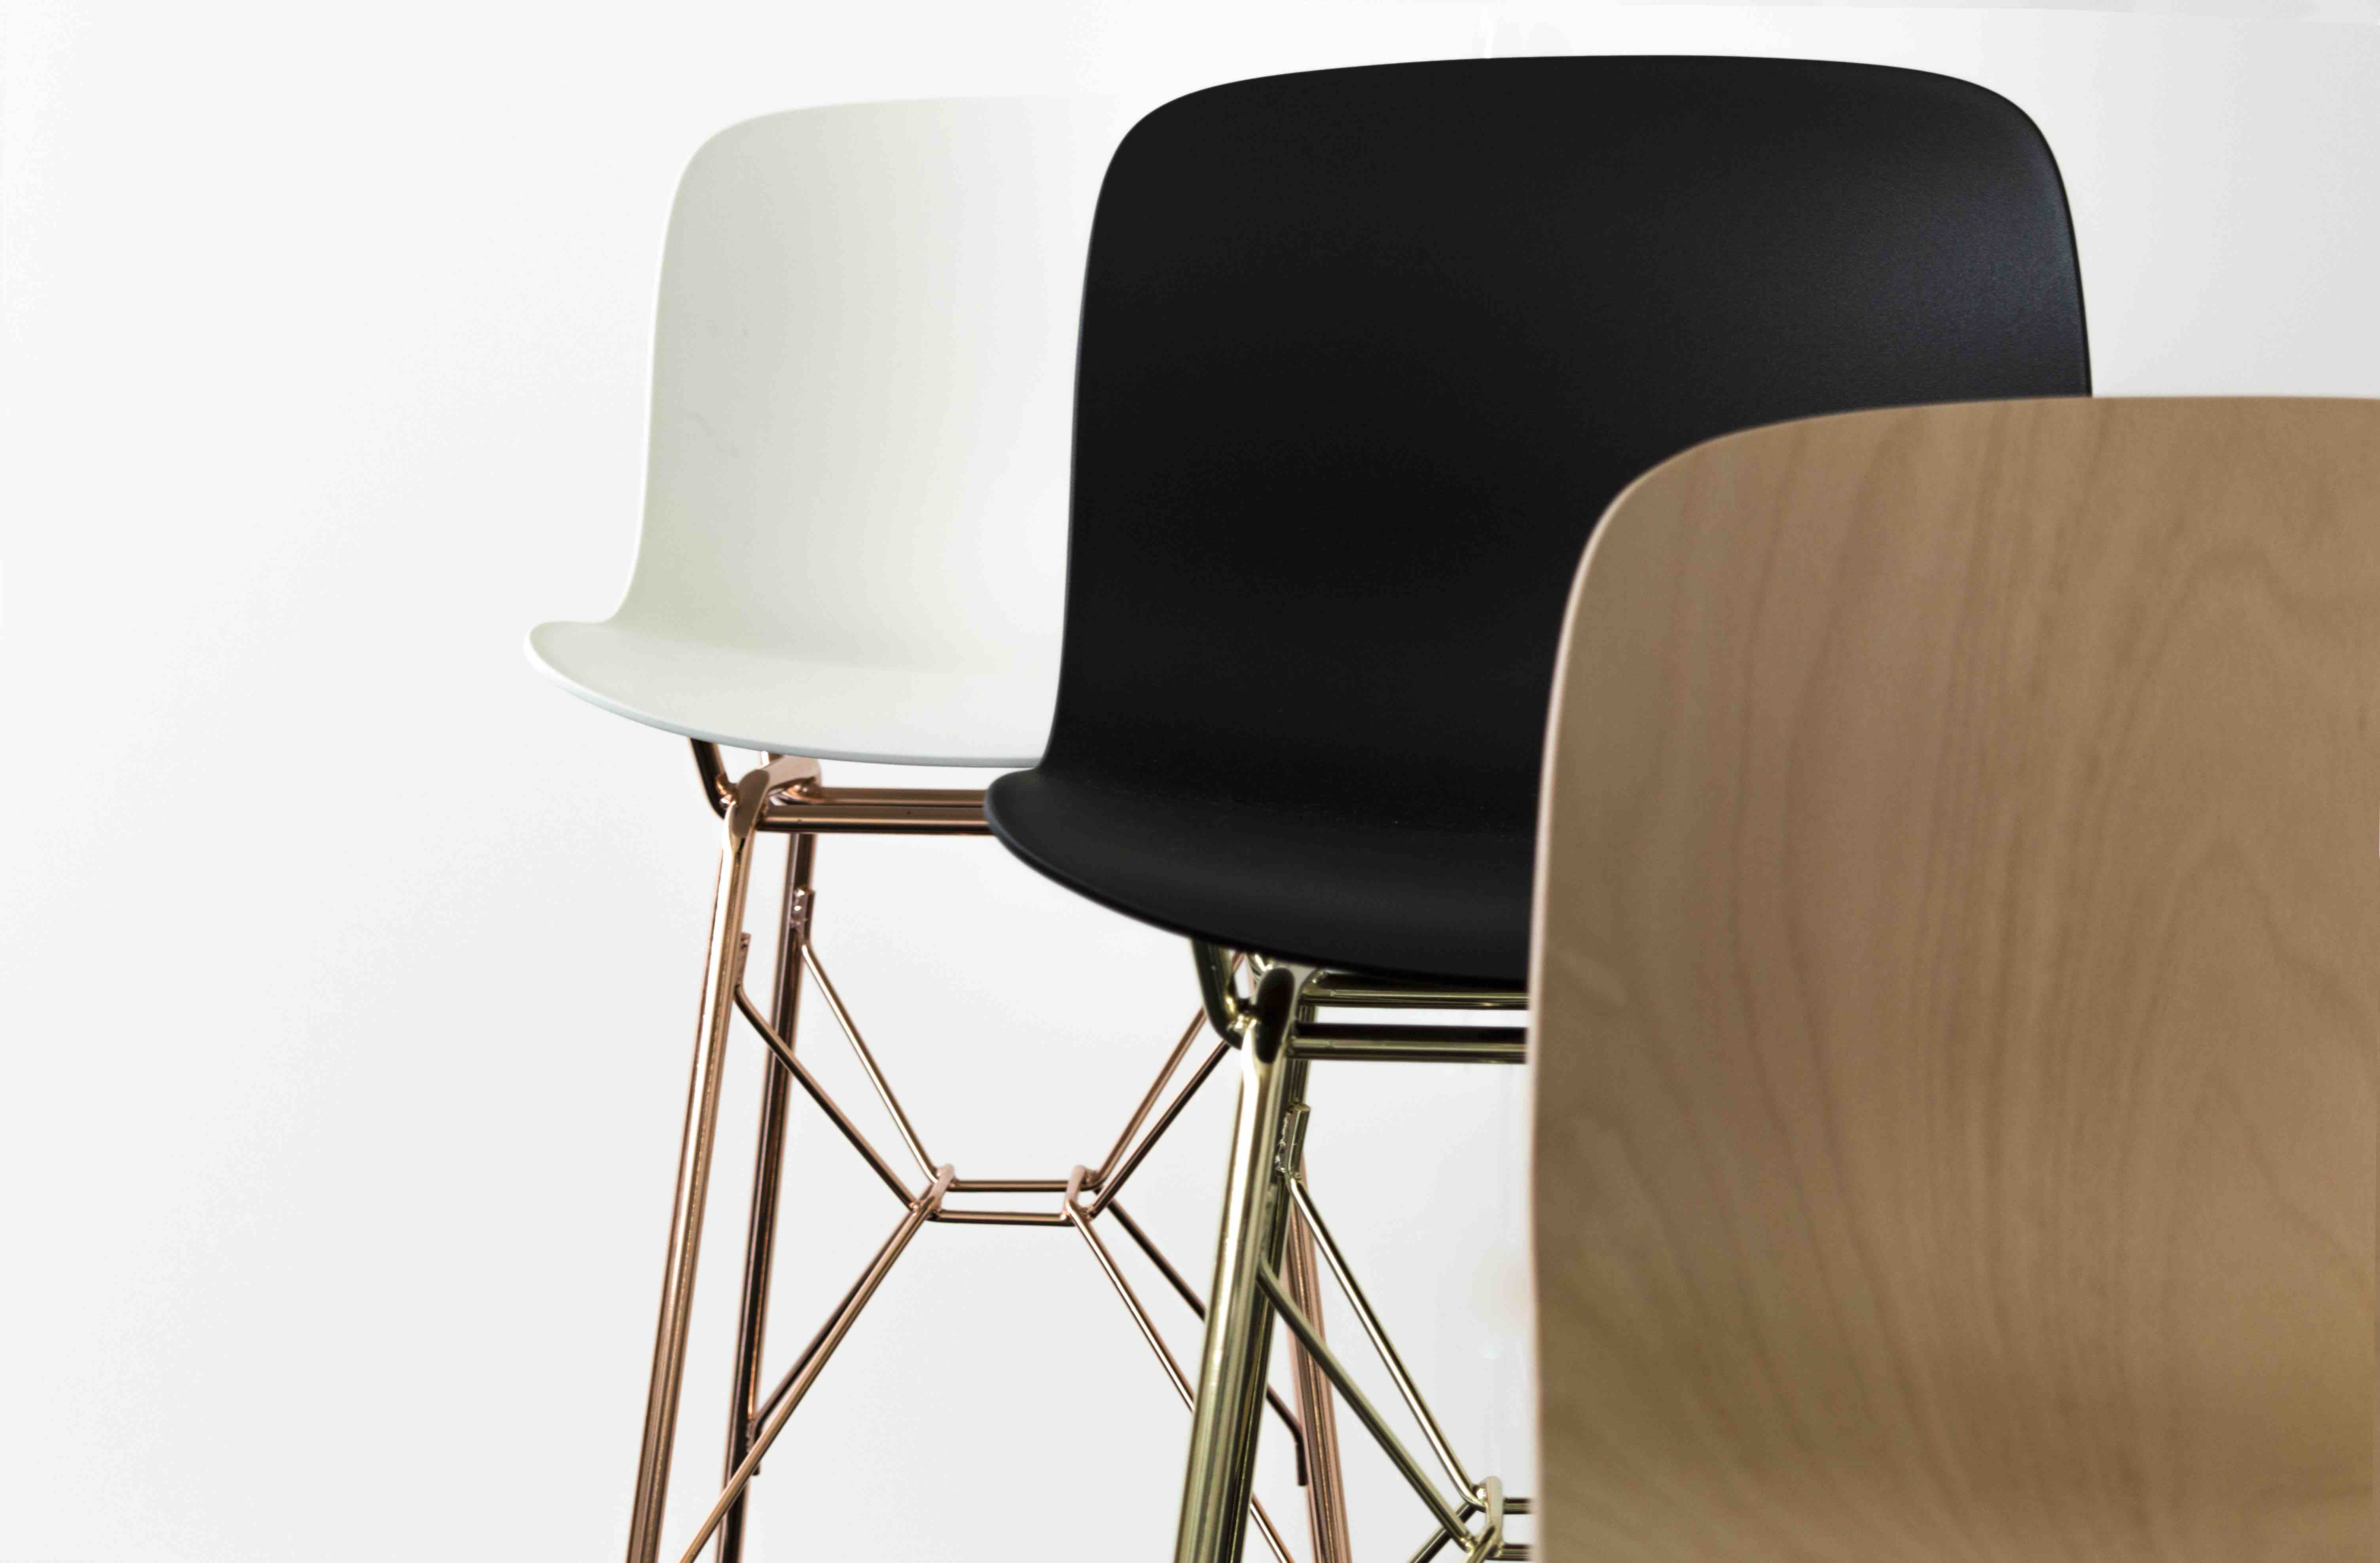 The seat of the Troy stool in a choice of white or black polypropylene as well as beech plywood.